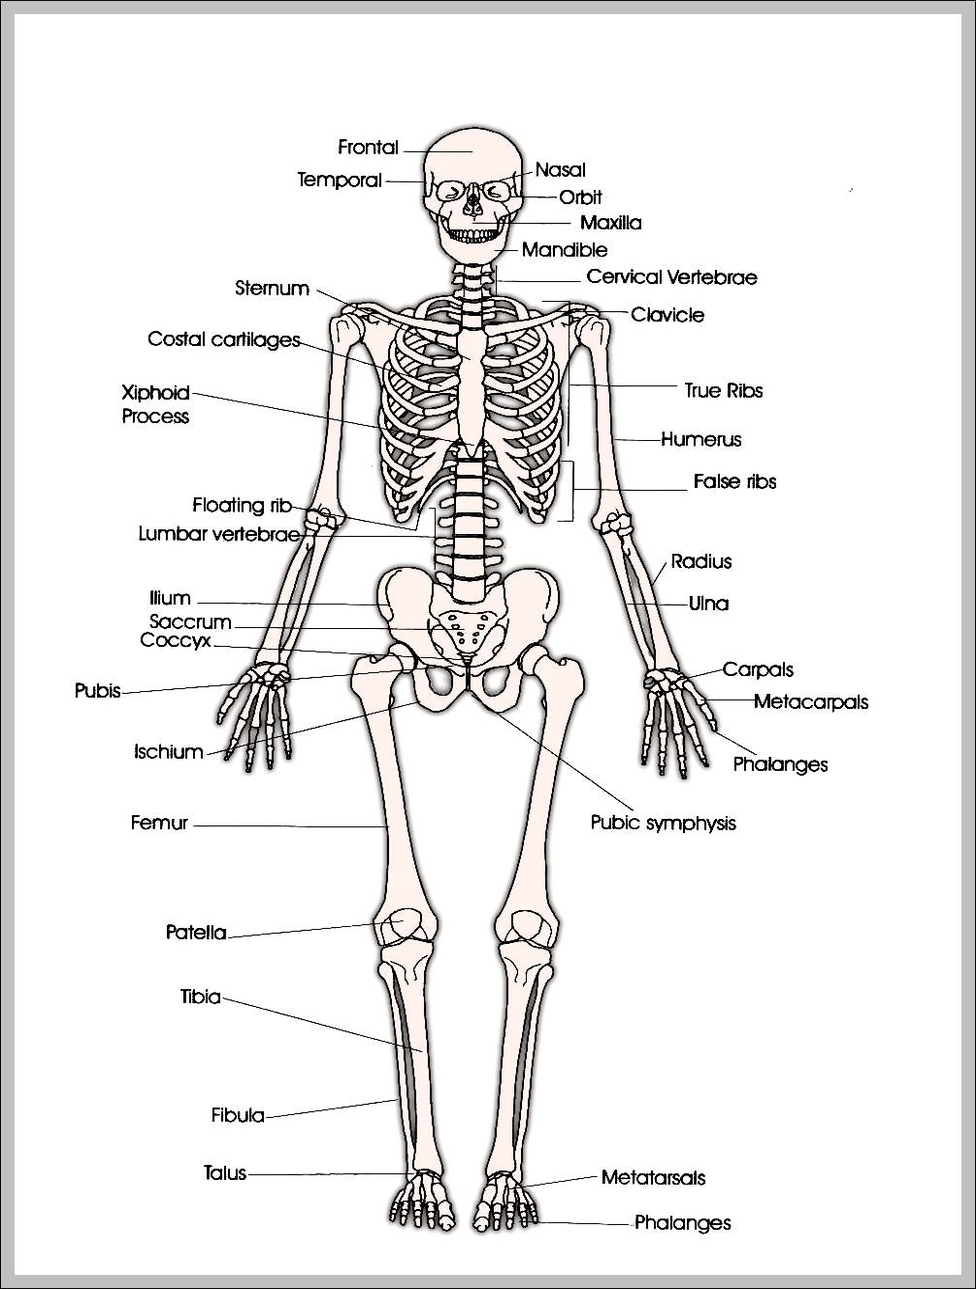 picture about Printable Human Skeleton identified as printable human skeleton Anatomy Procedure - Human Overall body